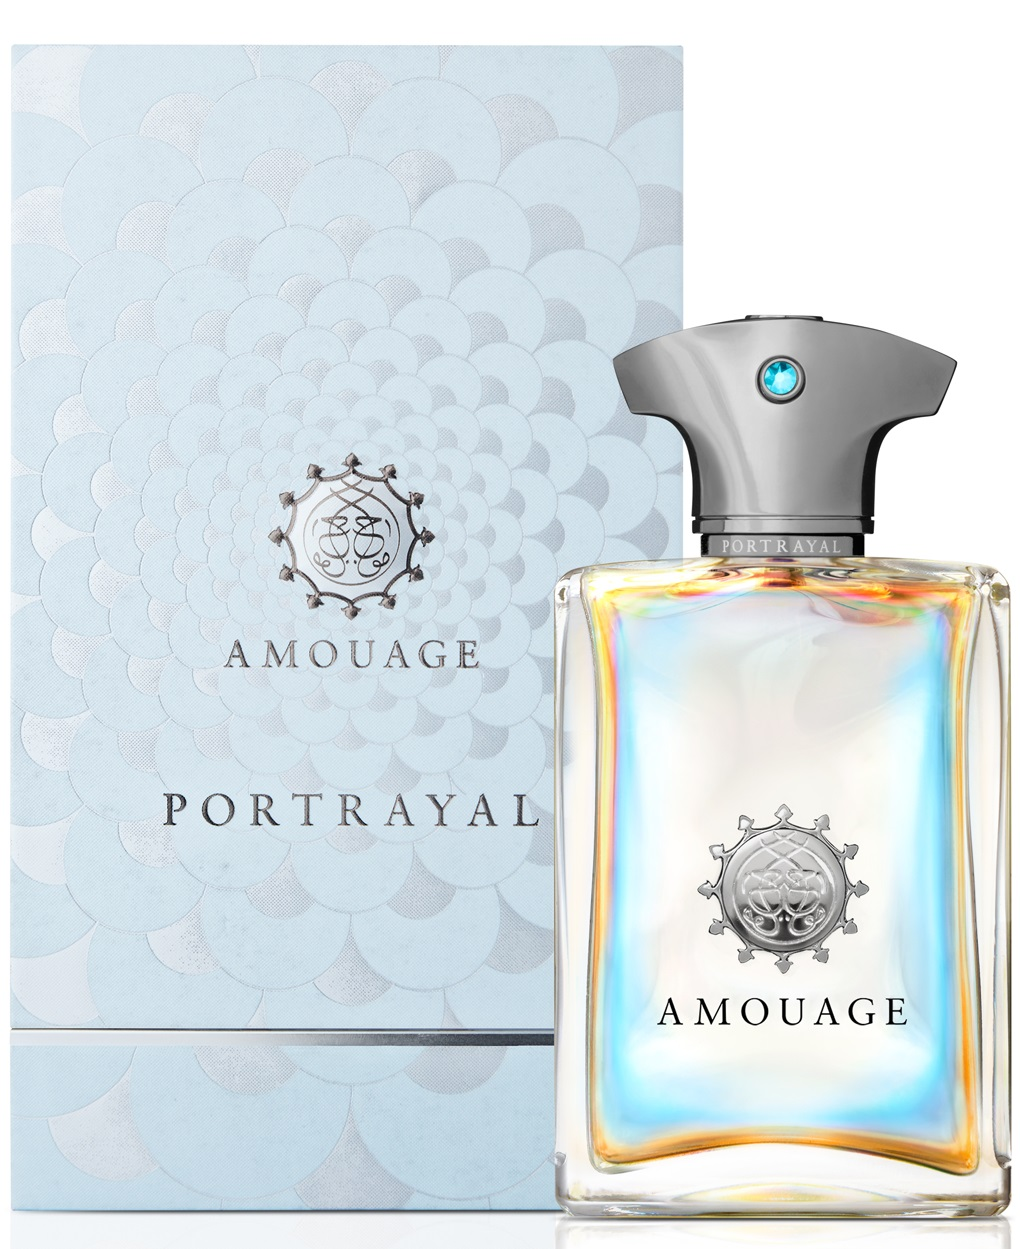 https://unifive.ru/uploads/image/file/33192/Amouage_Portrayal_Man1.jpg